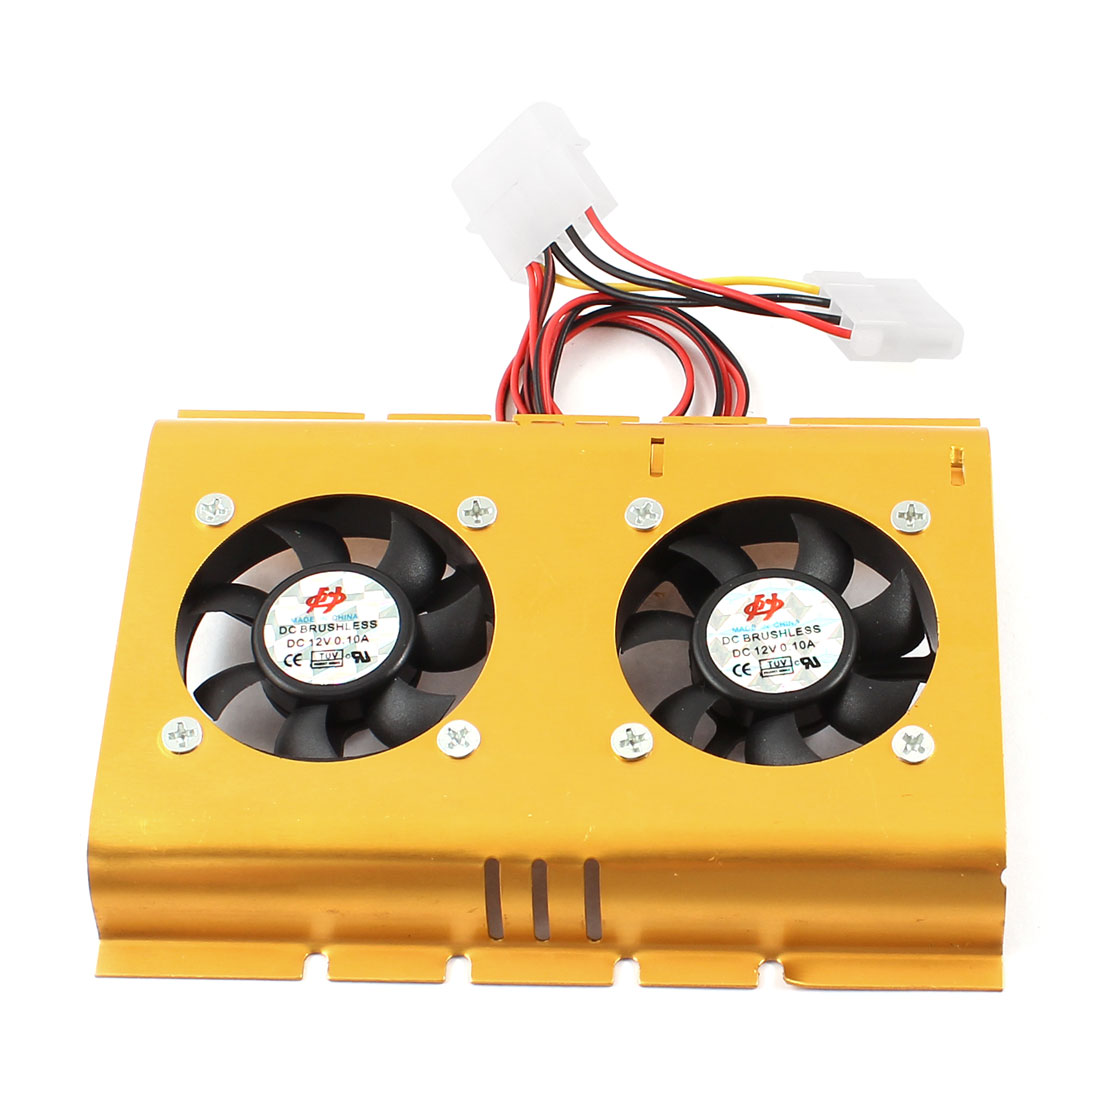 DC 12V 0.1A 4 Pin Gold Tone Dual PC Cooling Fan 50mm x 50mm